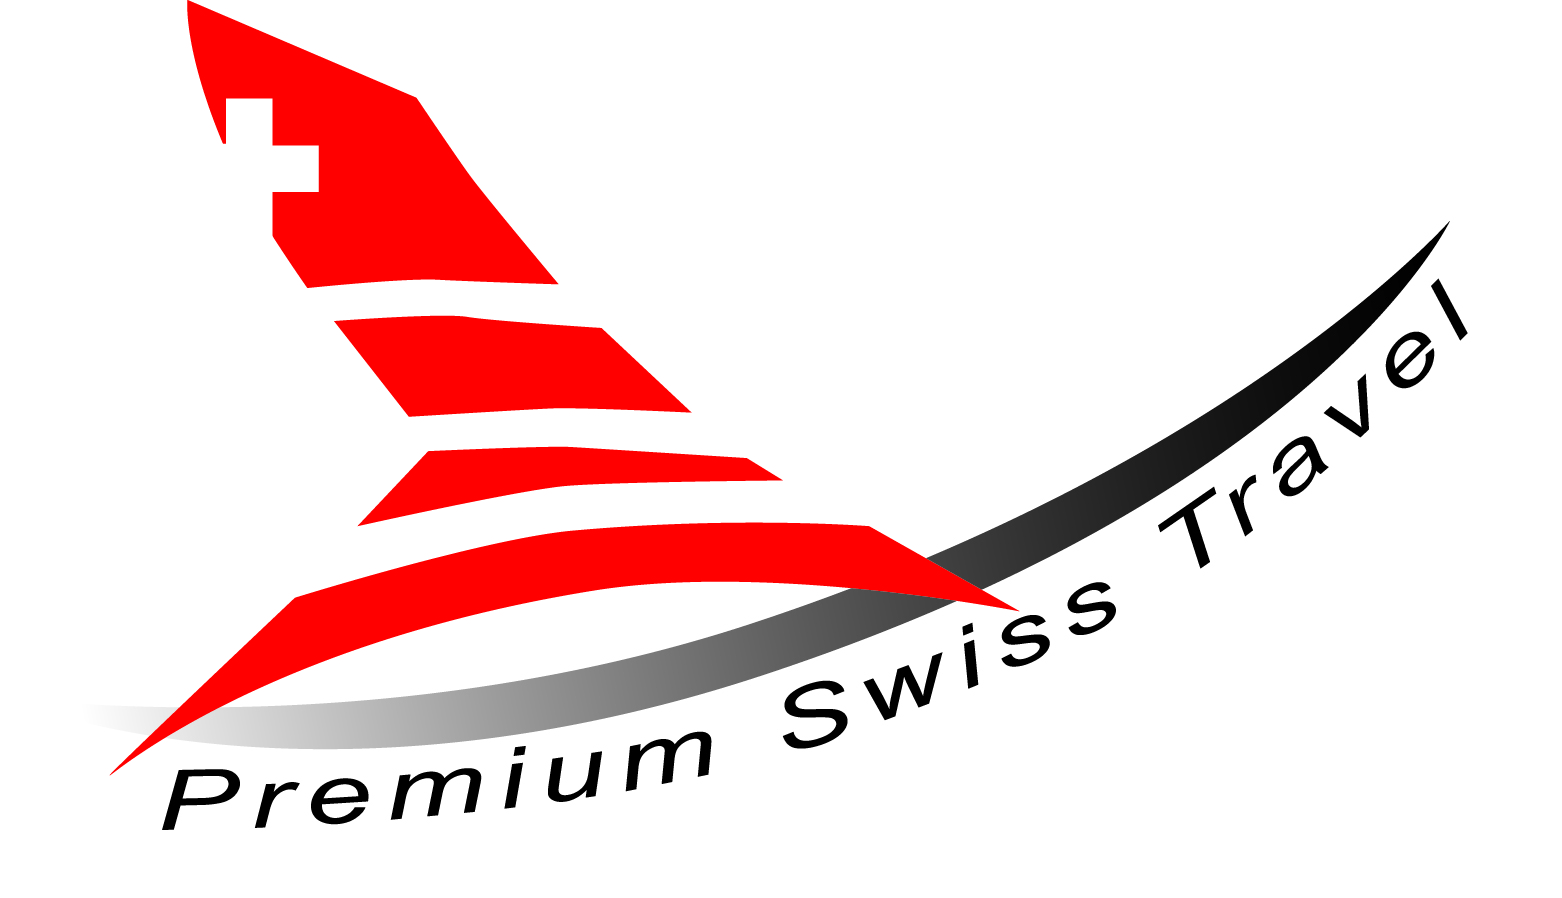 Premium Swiss Travel | Price per person (same) Archives - Premium Swiss Travel